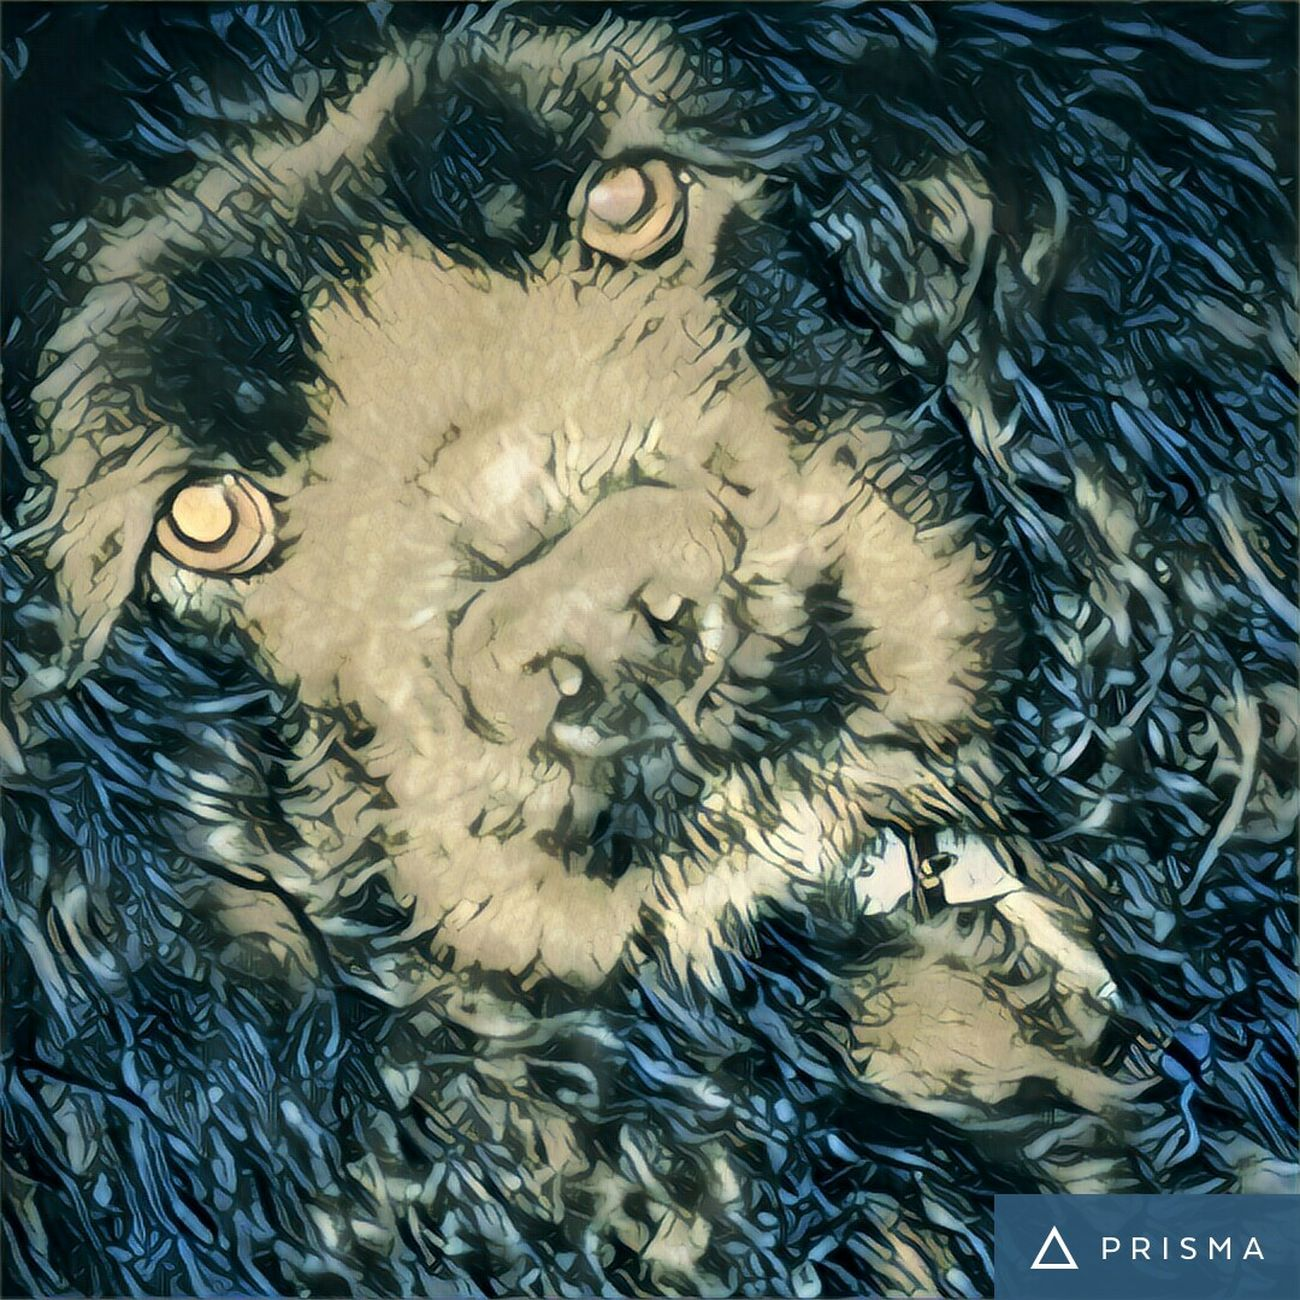 Bella Americancockerspaniel Pets Close-up My Dog Prisma App Prisma Art